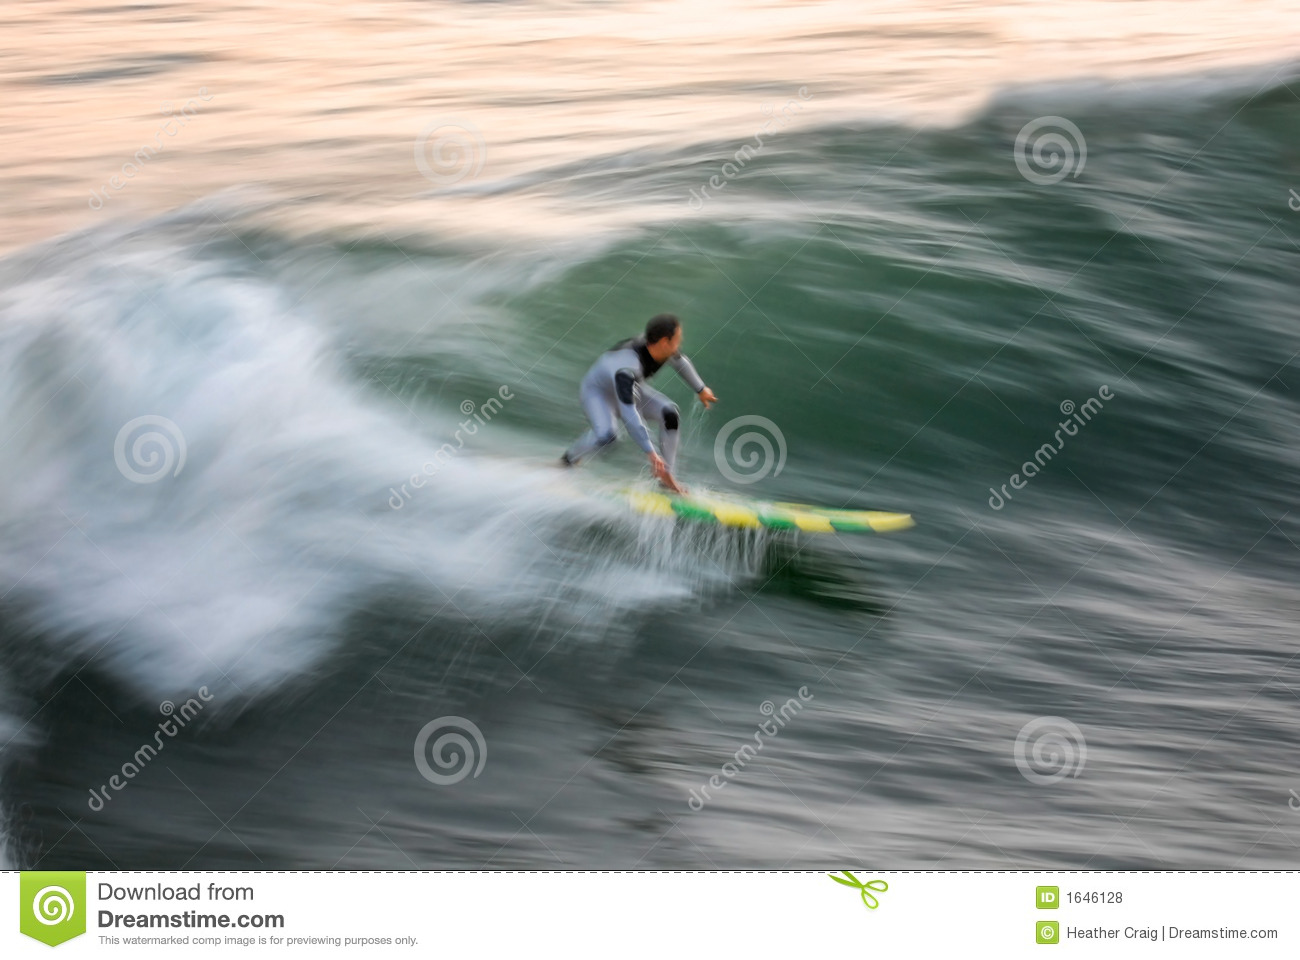 speed blur surf photos - photo #17